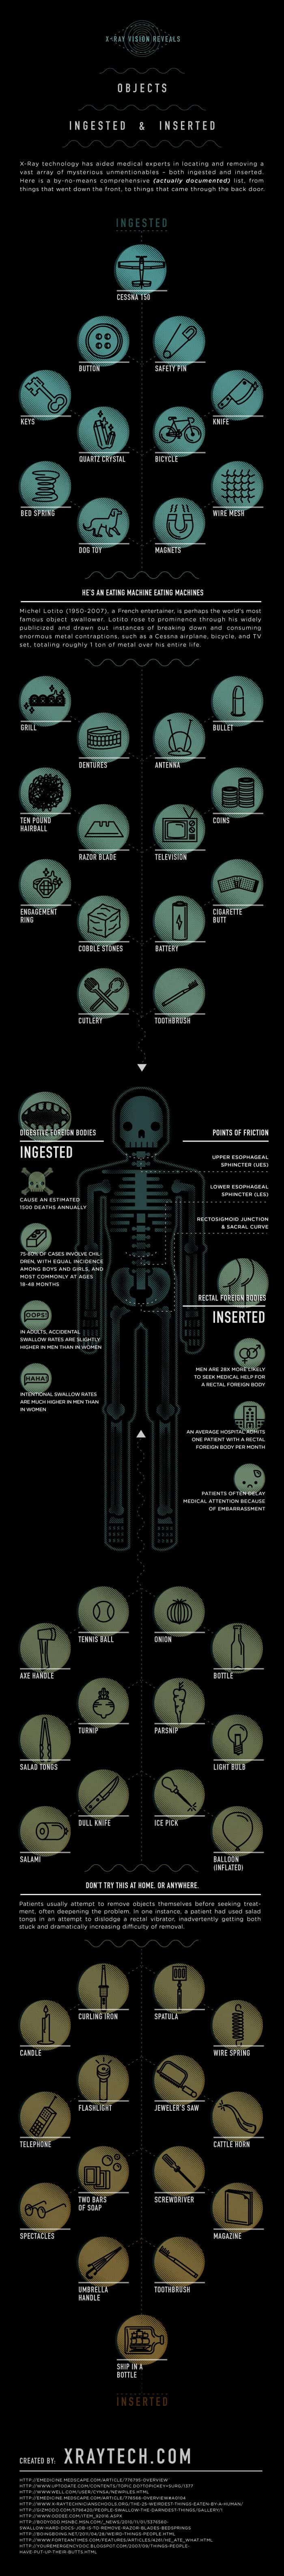 Most Obscure Objects Ingested or Inserted Infographic